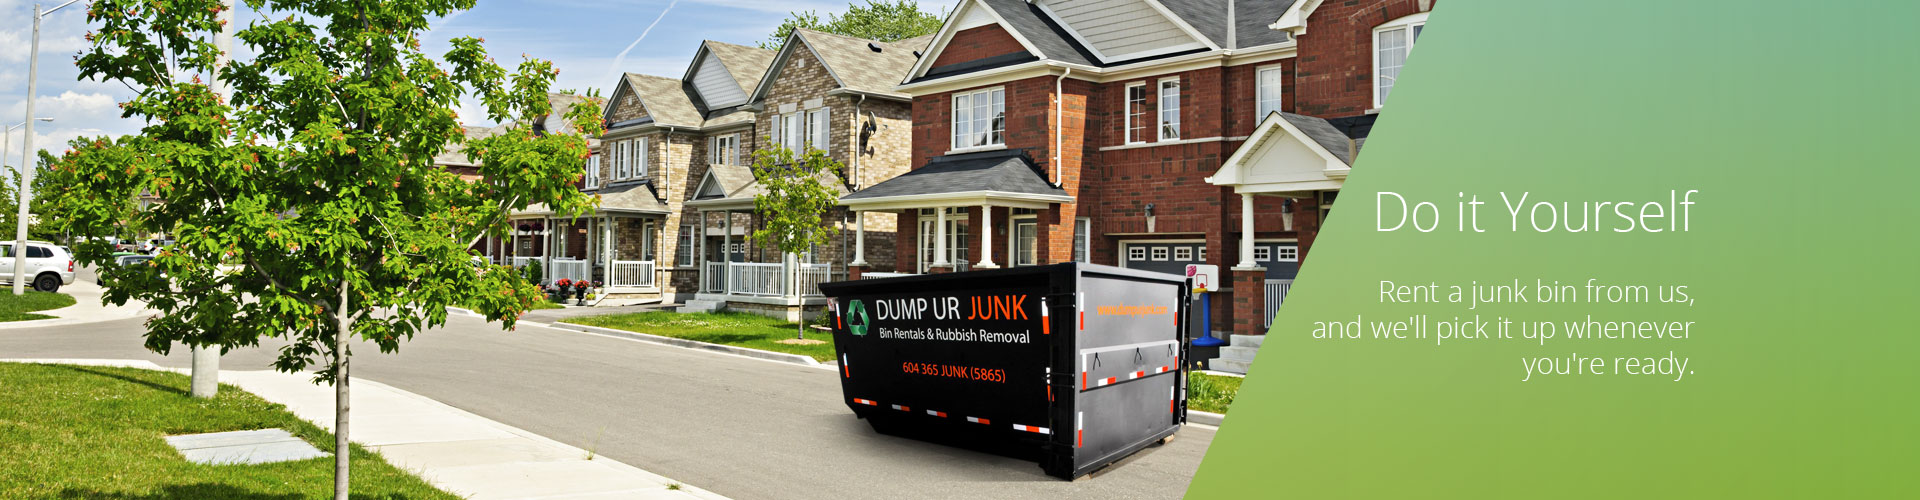 Dump Ur Junk - Do It Yourself